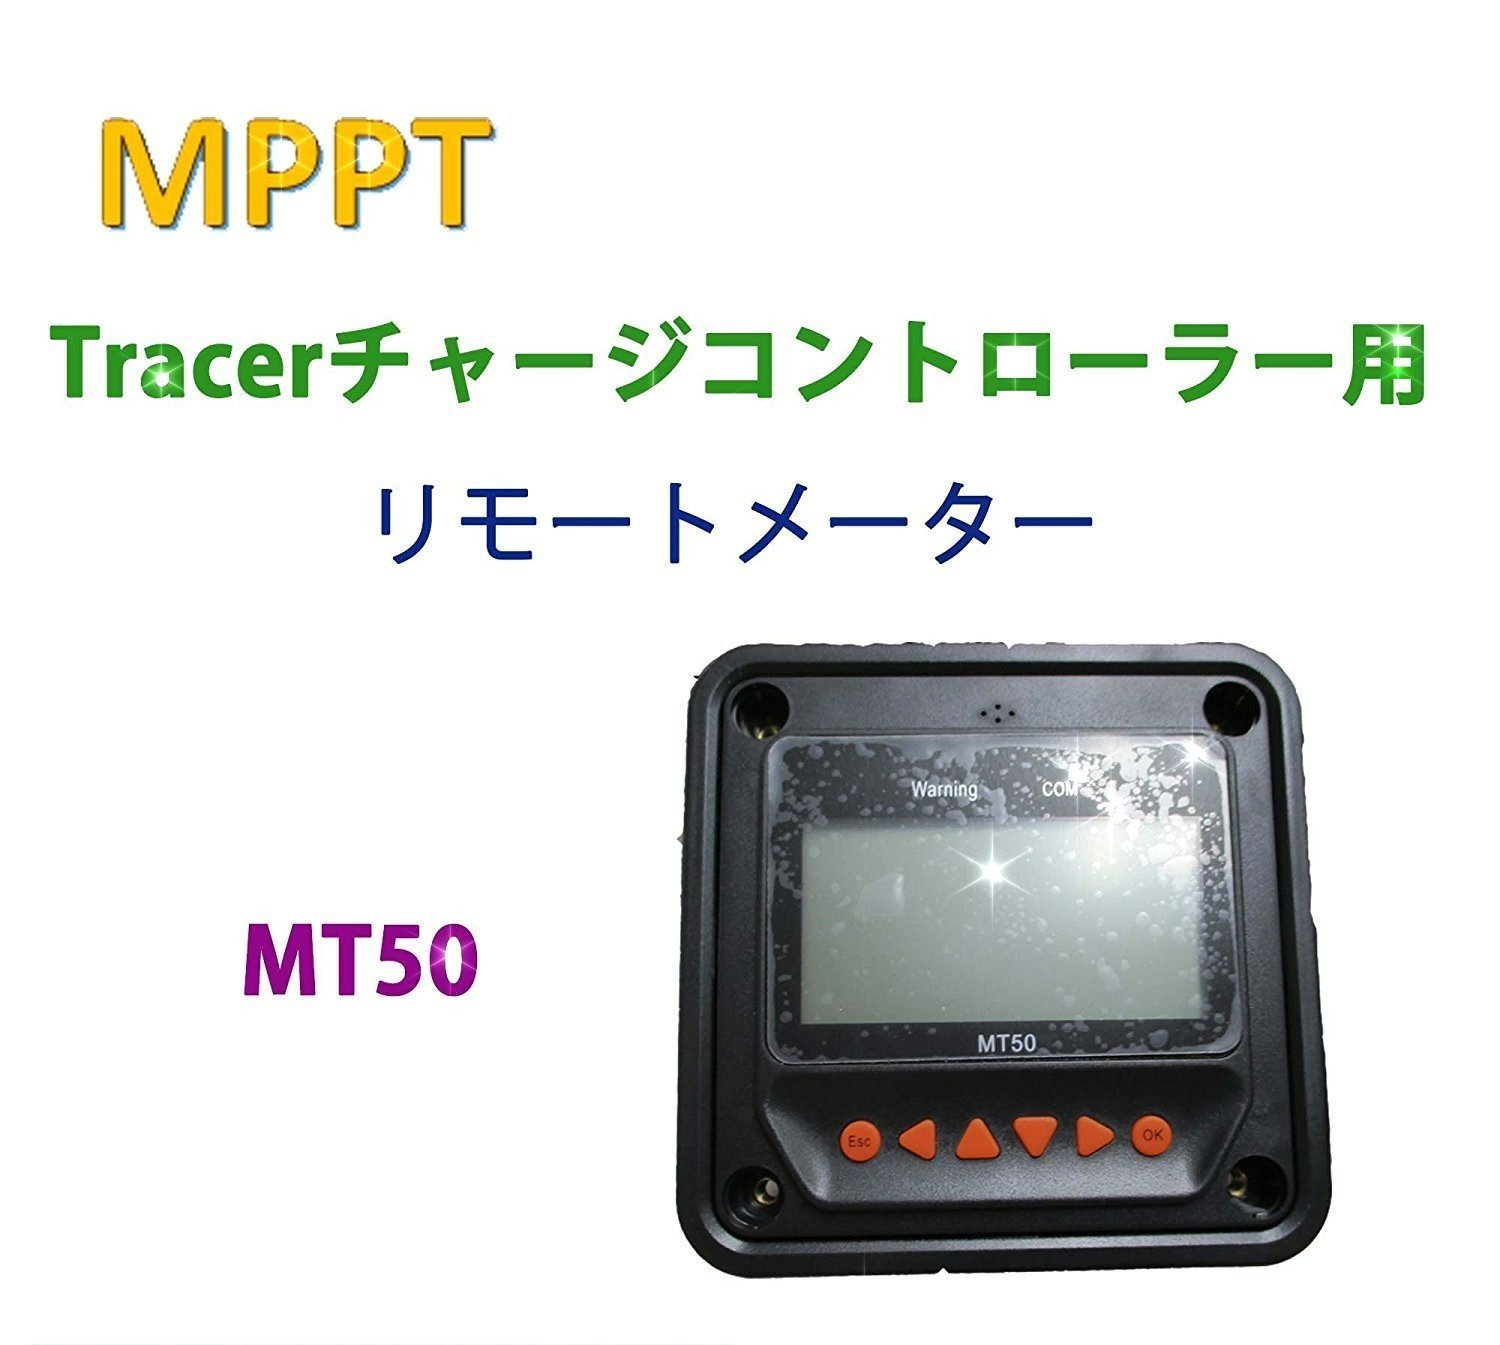 EPsolar Solar Charge Controller MPPT Control 10A/20A/30A/40A with 12V/24V DC Input (Accessory-MT50)